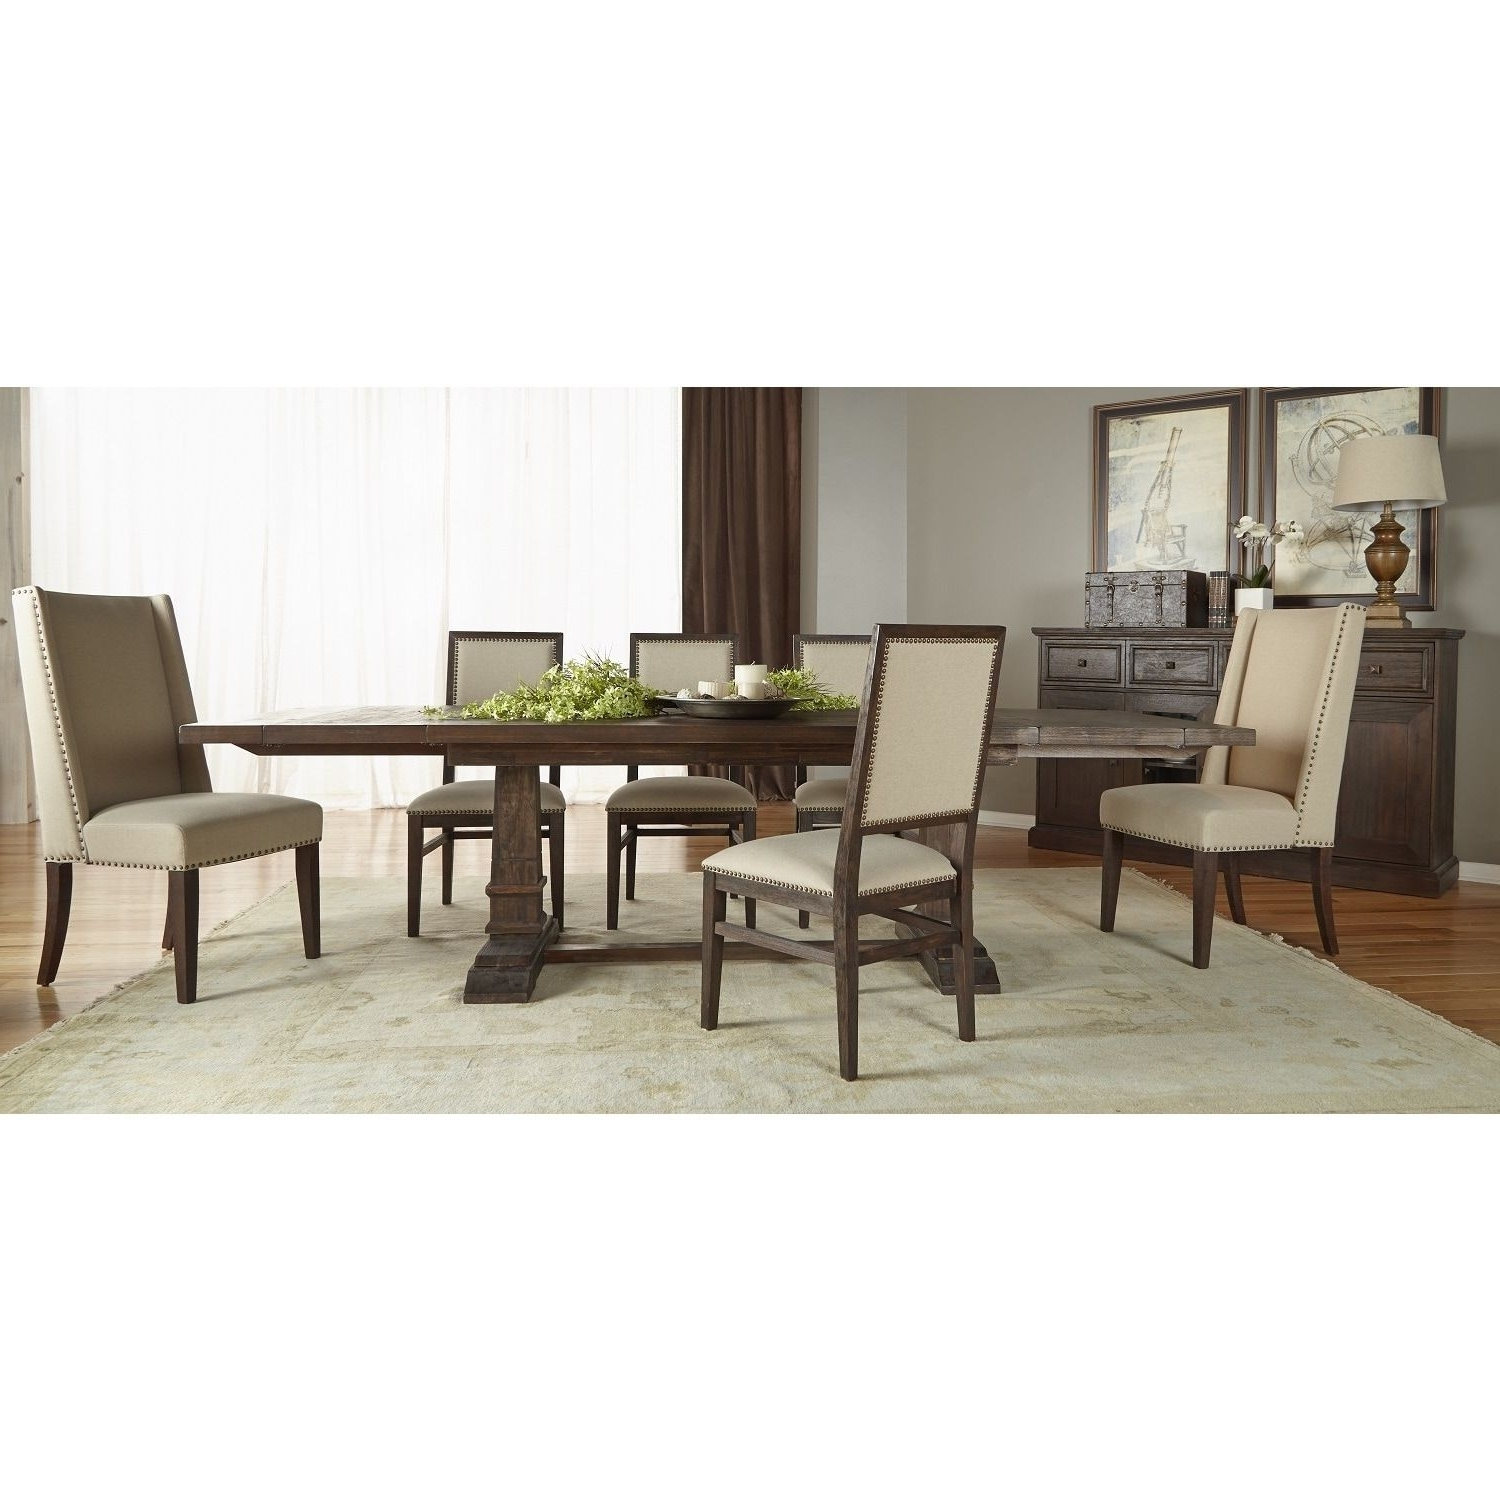 Chandler 7 Piece Extension Dining Sets With Fabric Side Chairs In Recent Gray Manor Harlan Rustic Java Double Pedestal Extension Dining Table (View 9 of 25)